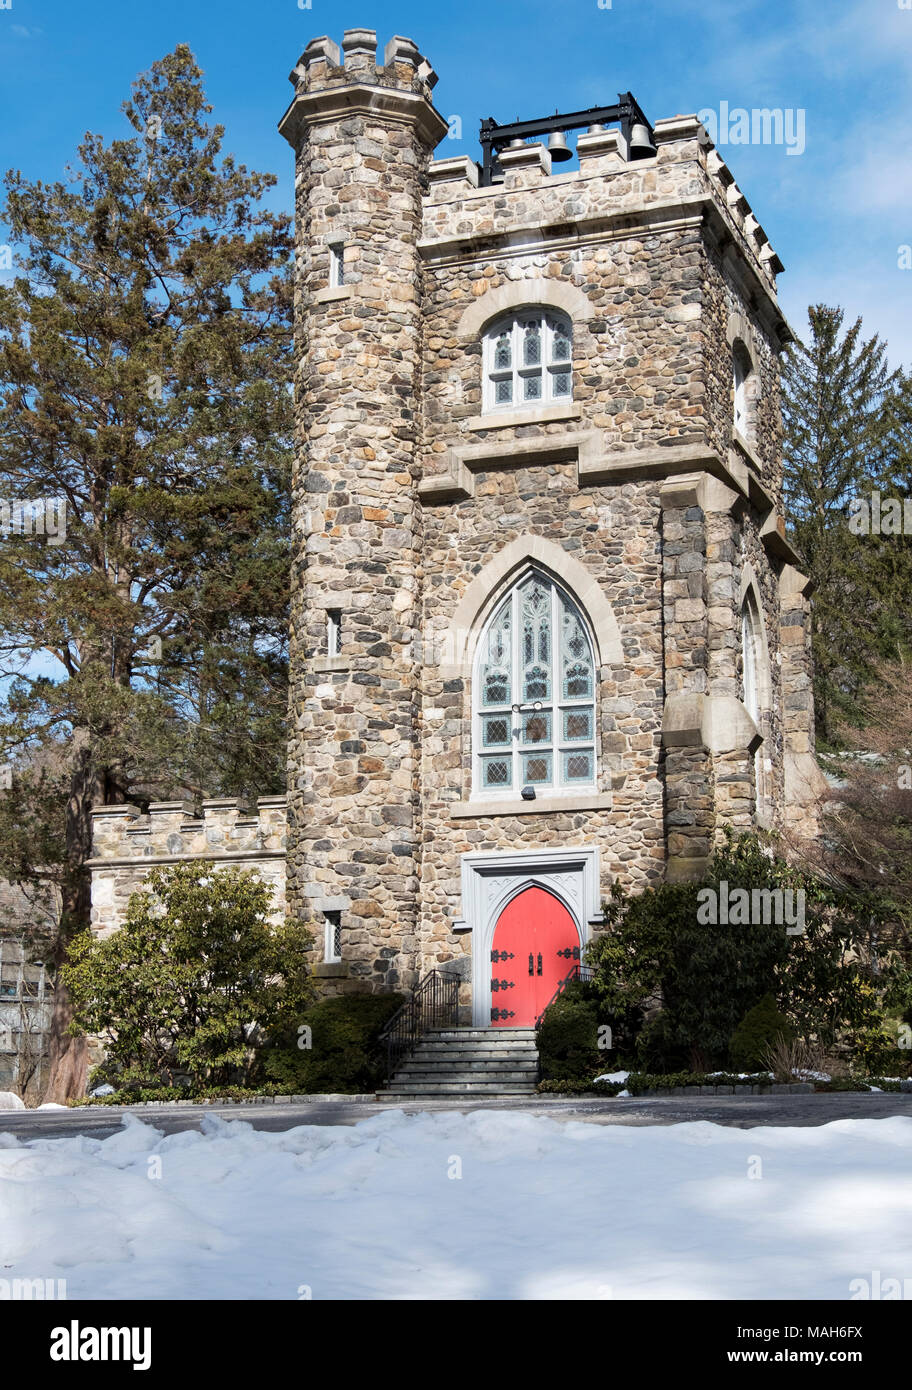 Saint Mary the Virgin Episcopal Church on South Greeley Avenue in downtown Chappaqua,New York. Stock Photo